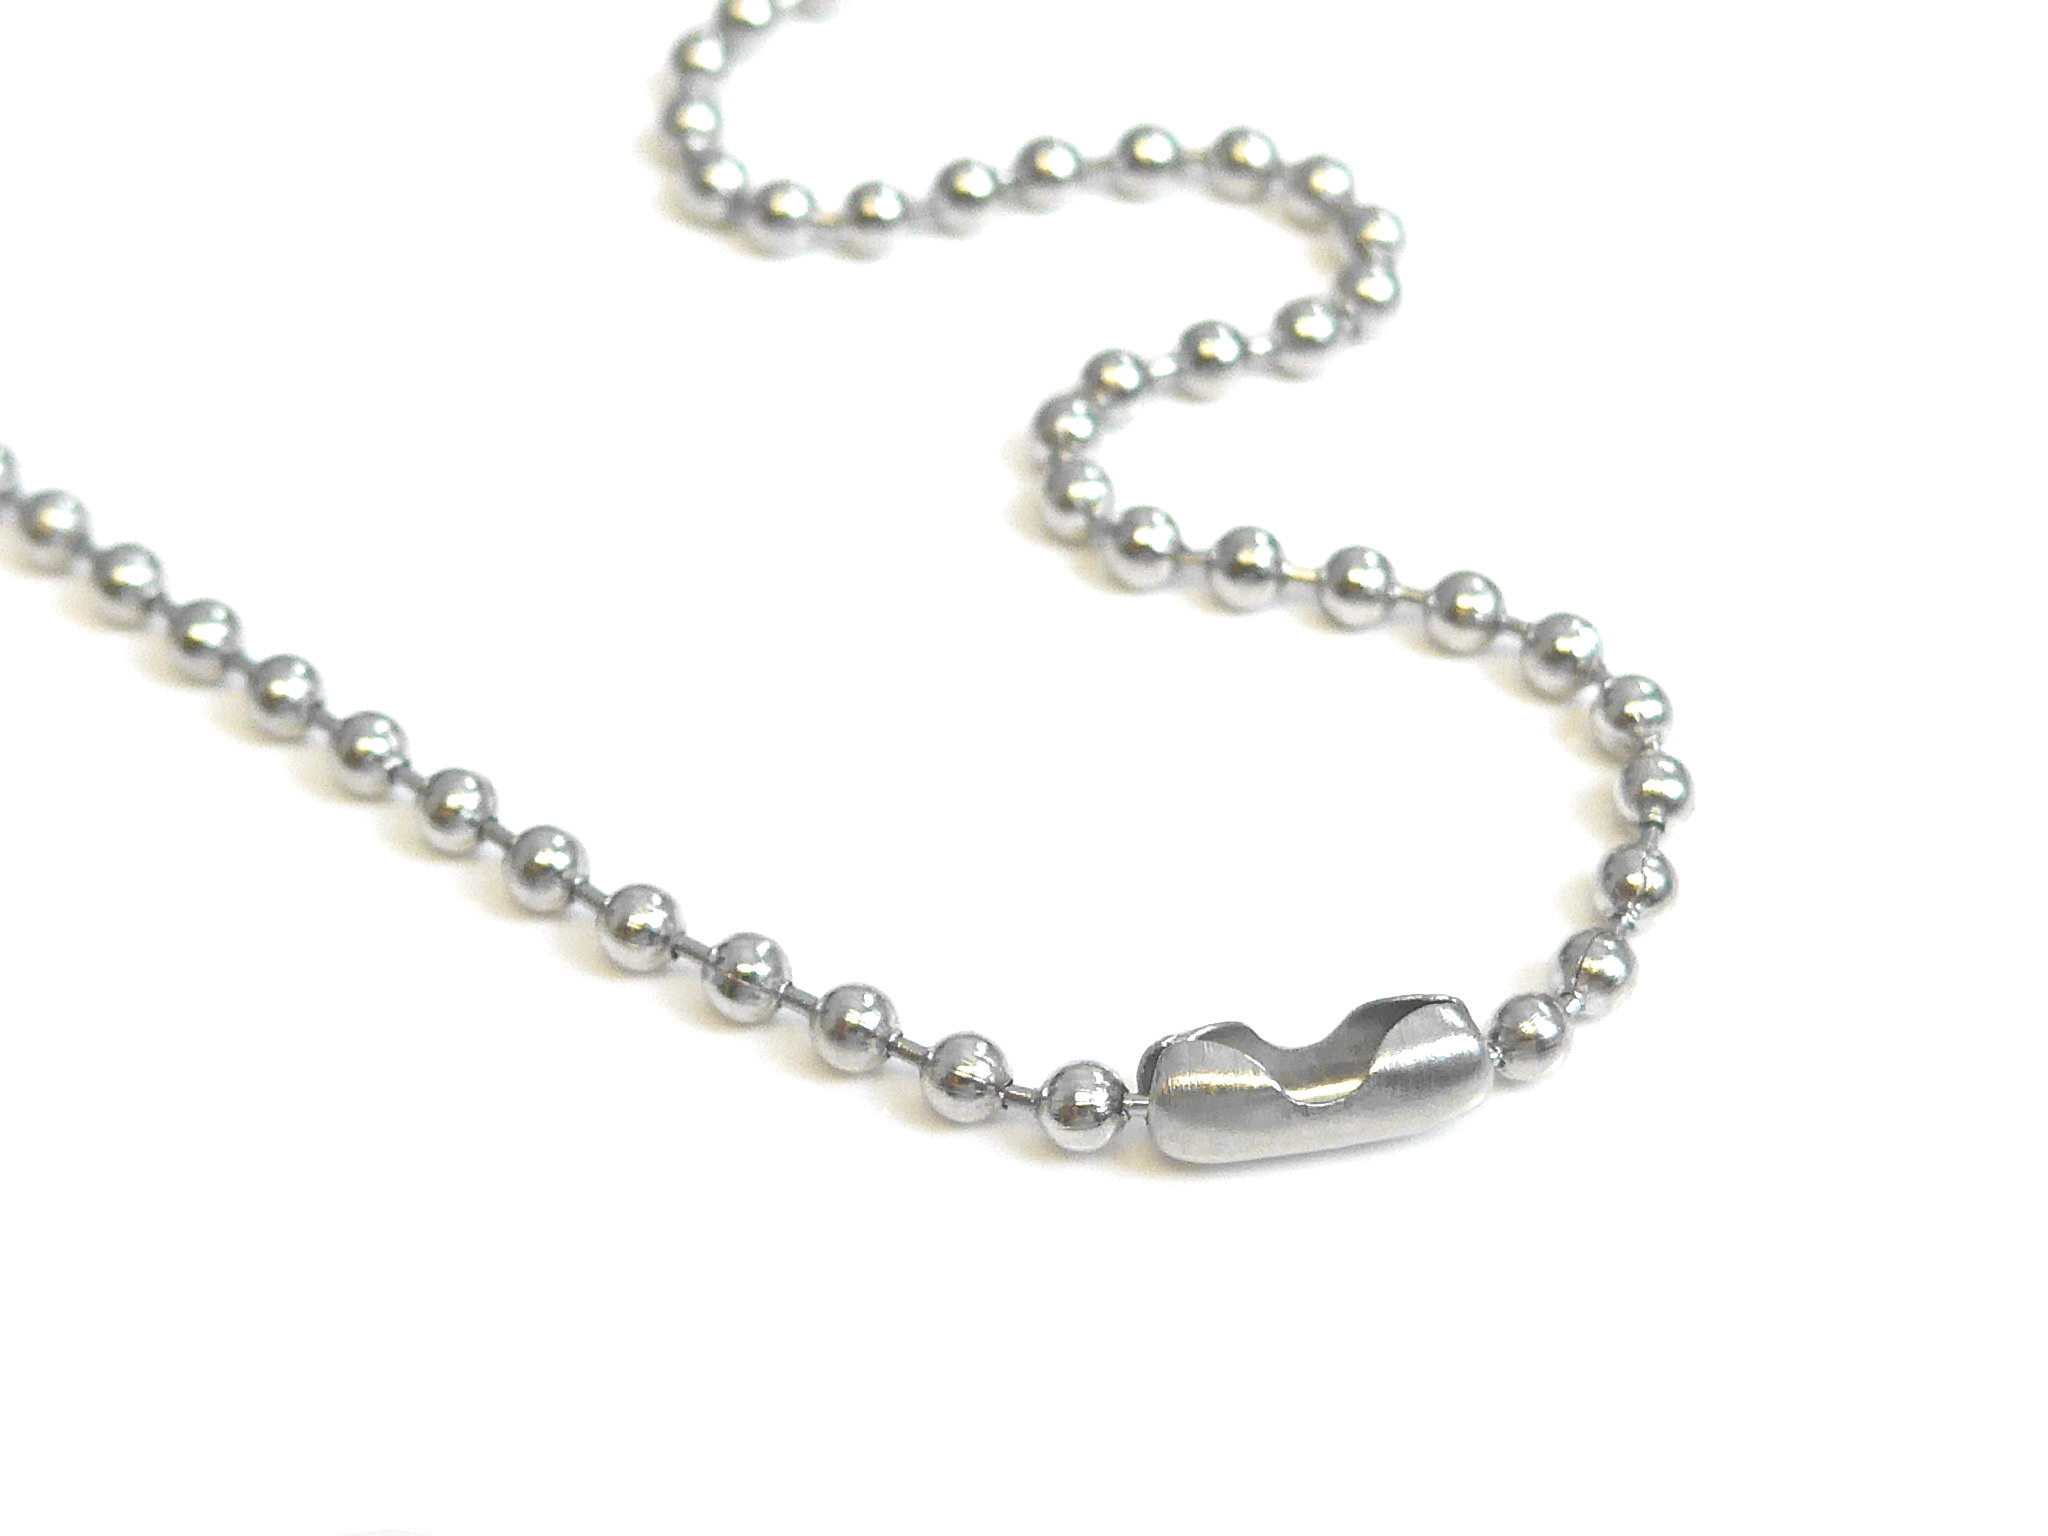 Stainless Steel Ball Chain Necklace 30 Inches 2.4mm Size  3 Pack of 50 –  LjDeals f7b33ffa2bef